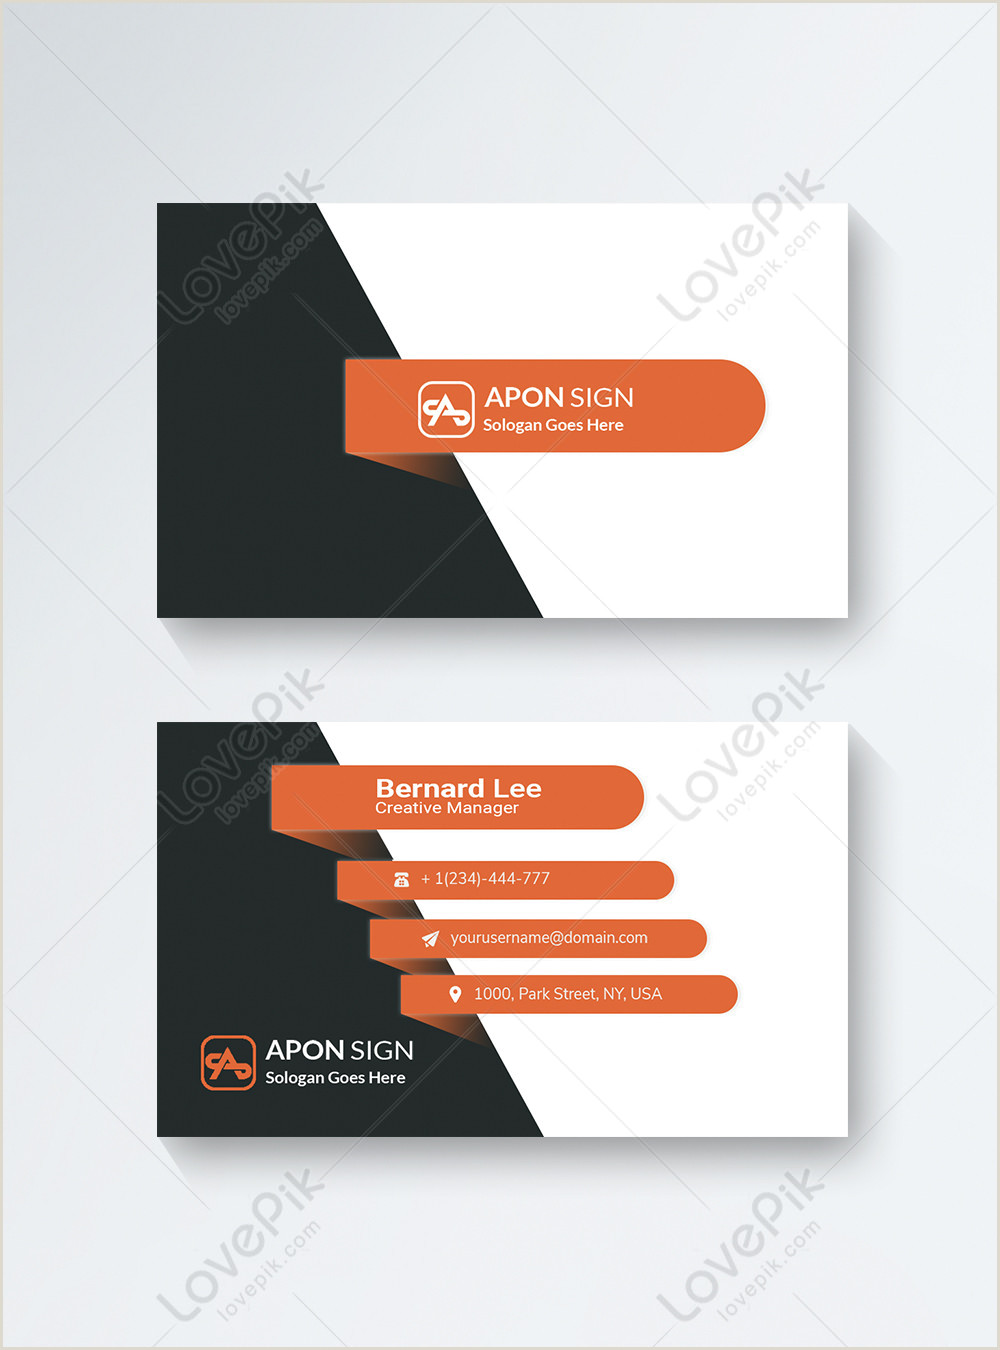 Business Cards Unique Image On Each Card Unique Business Card Template Image Picture Free